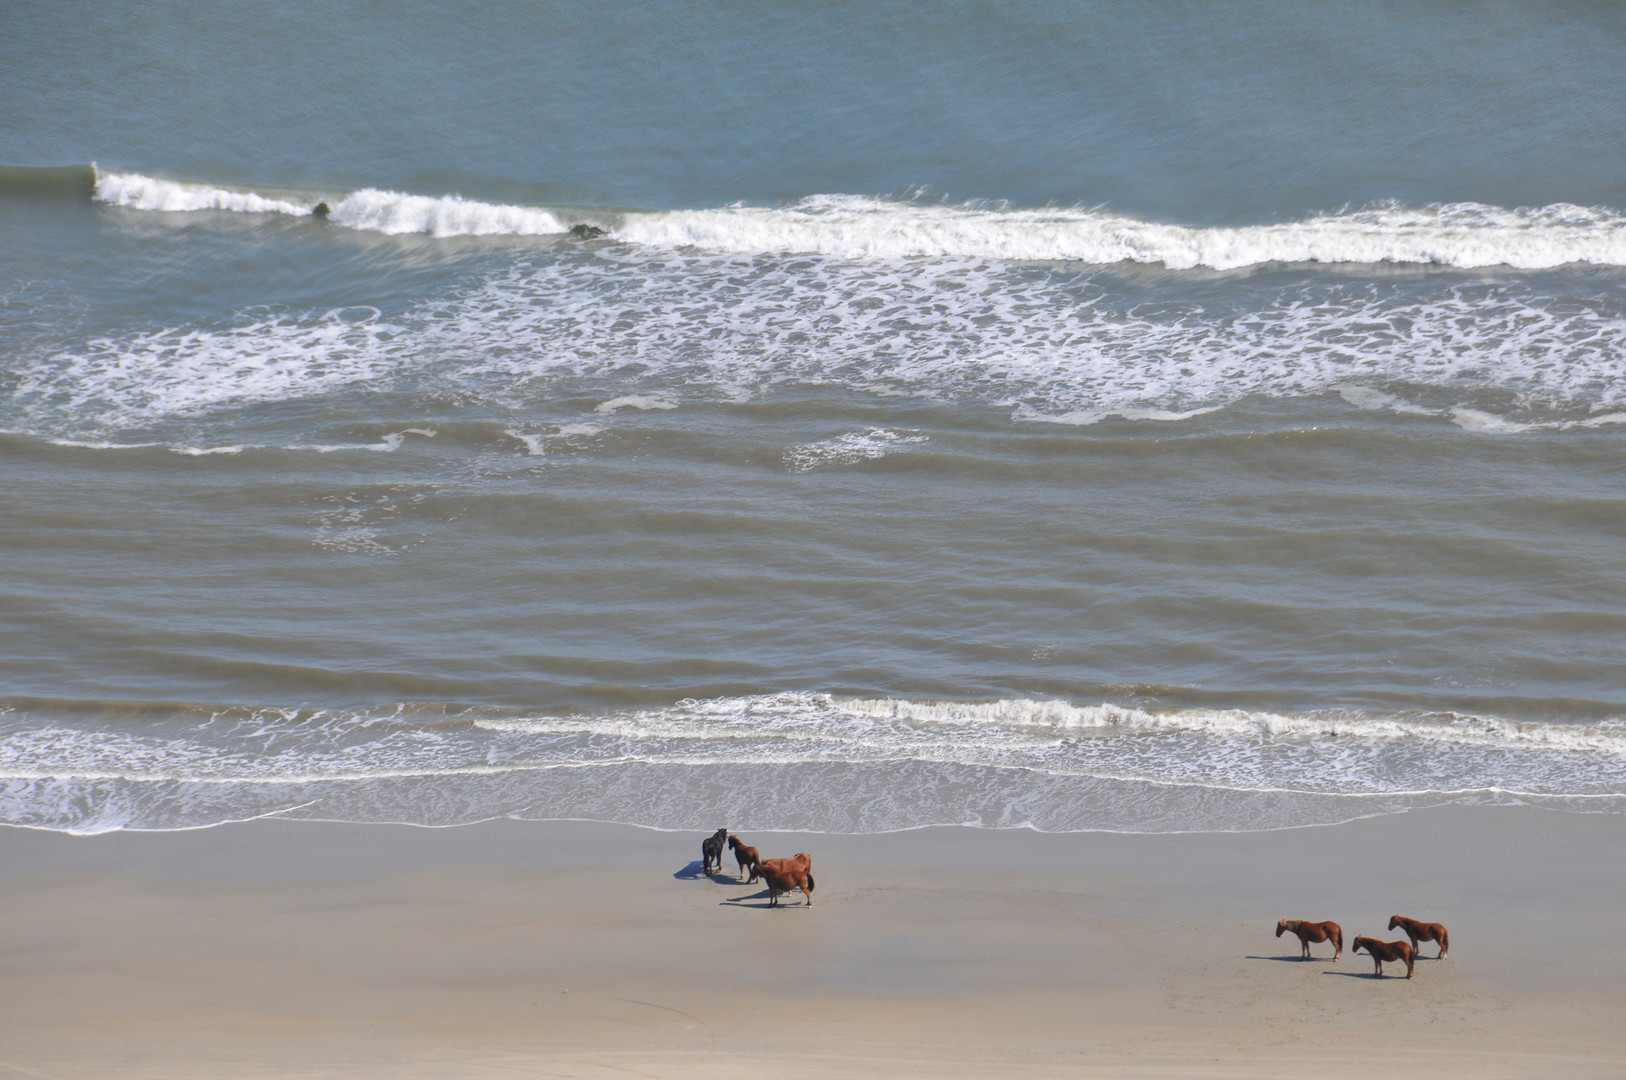 horses on beach too.JPG